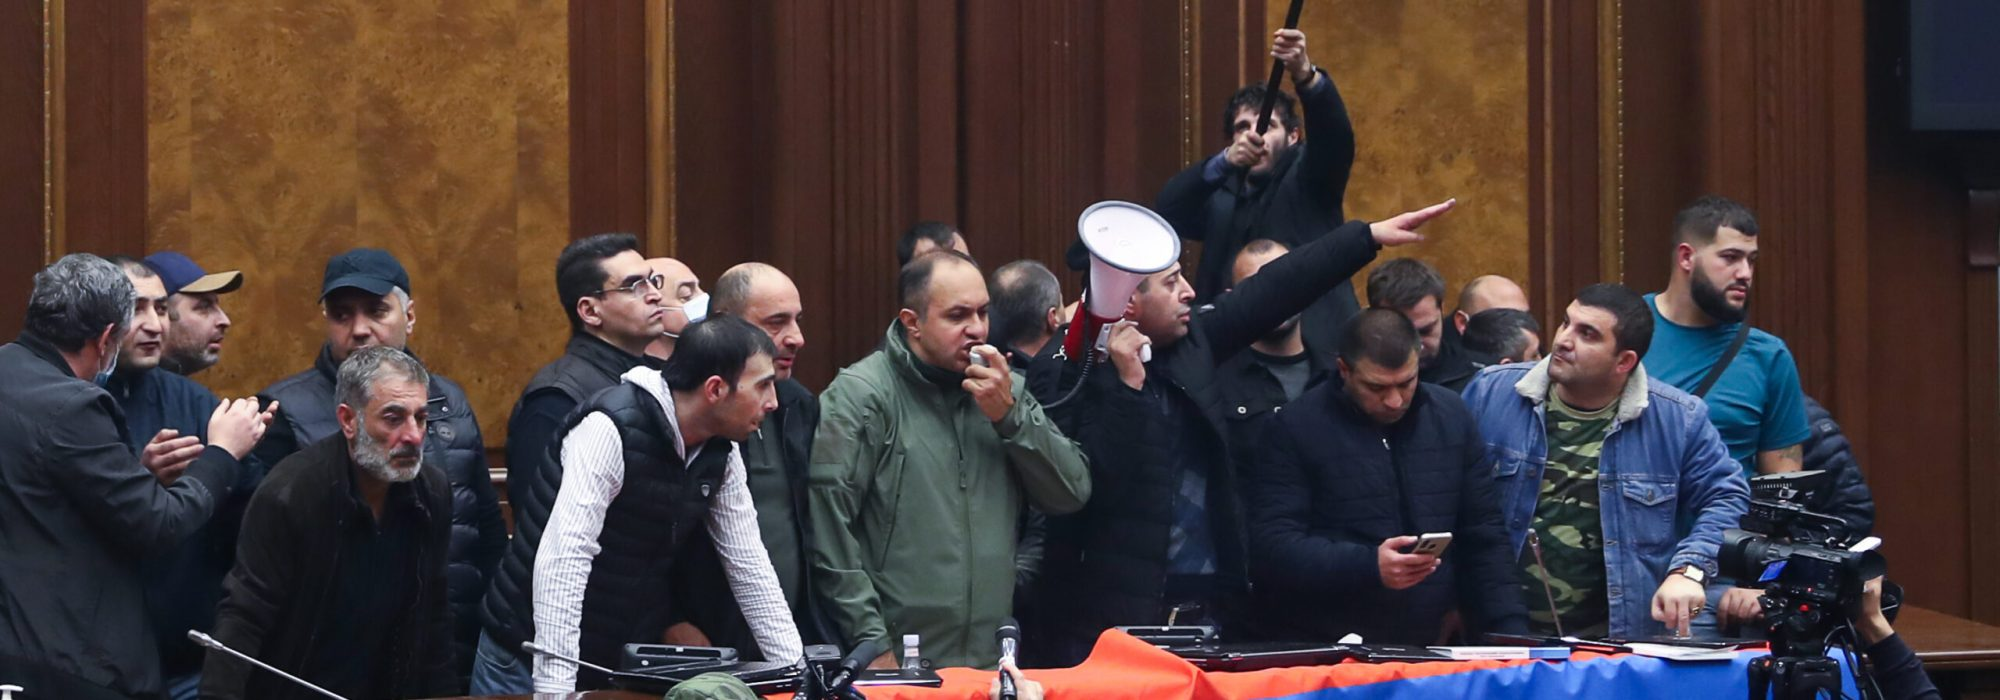 YEREVAN, ARMENIA - NOVEMBER 10, 2020: Demonstrators protesting against the end of war in Nagorno Karabakh break into the building of the National Assembly of Armenia (parliament). On 10 November 2020, Armenia's prime minister Pashinyan, Russia's president Putin and Azerbaijan's president Aliyev signed an agreement to end the war in Nagorno Karabakh. Stanislav Krasilnikov/TASS,Image: 568202734, License: Rights-managed, Restrictions: , Model Release: no, Credit line: Stanislav Krasilnikov / TASS / Forum